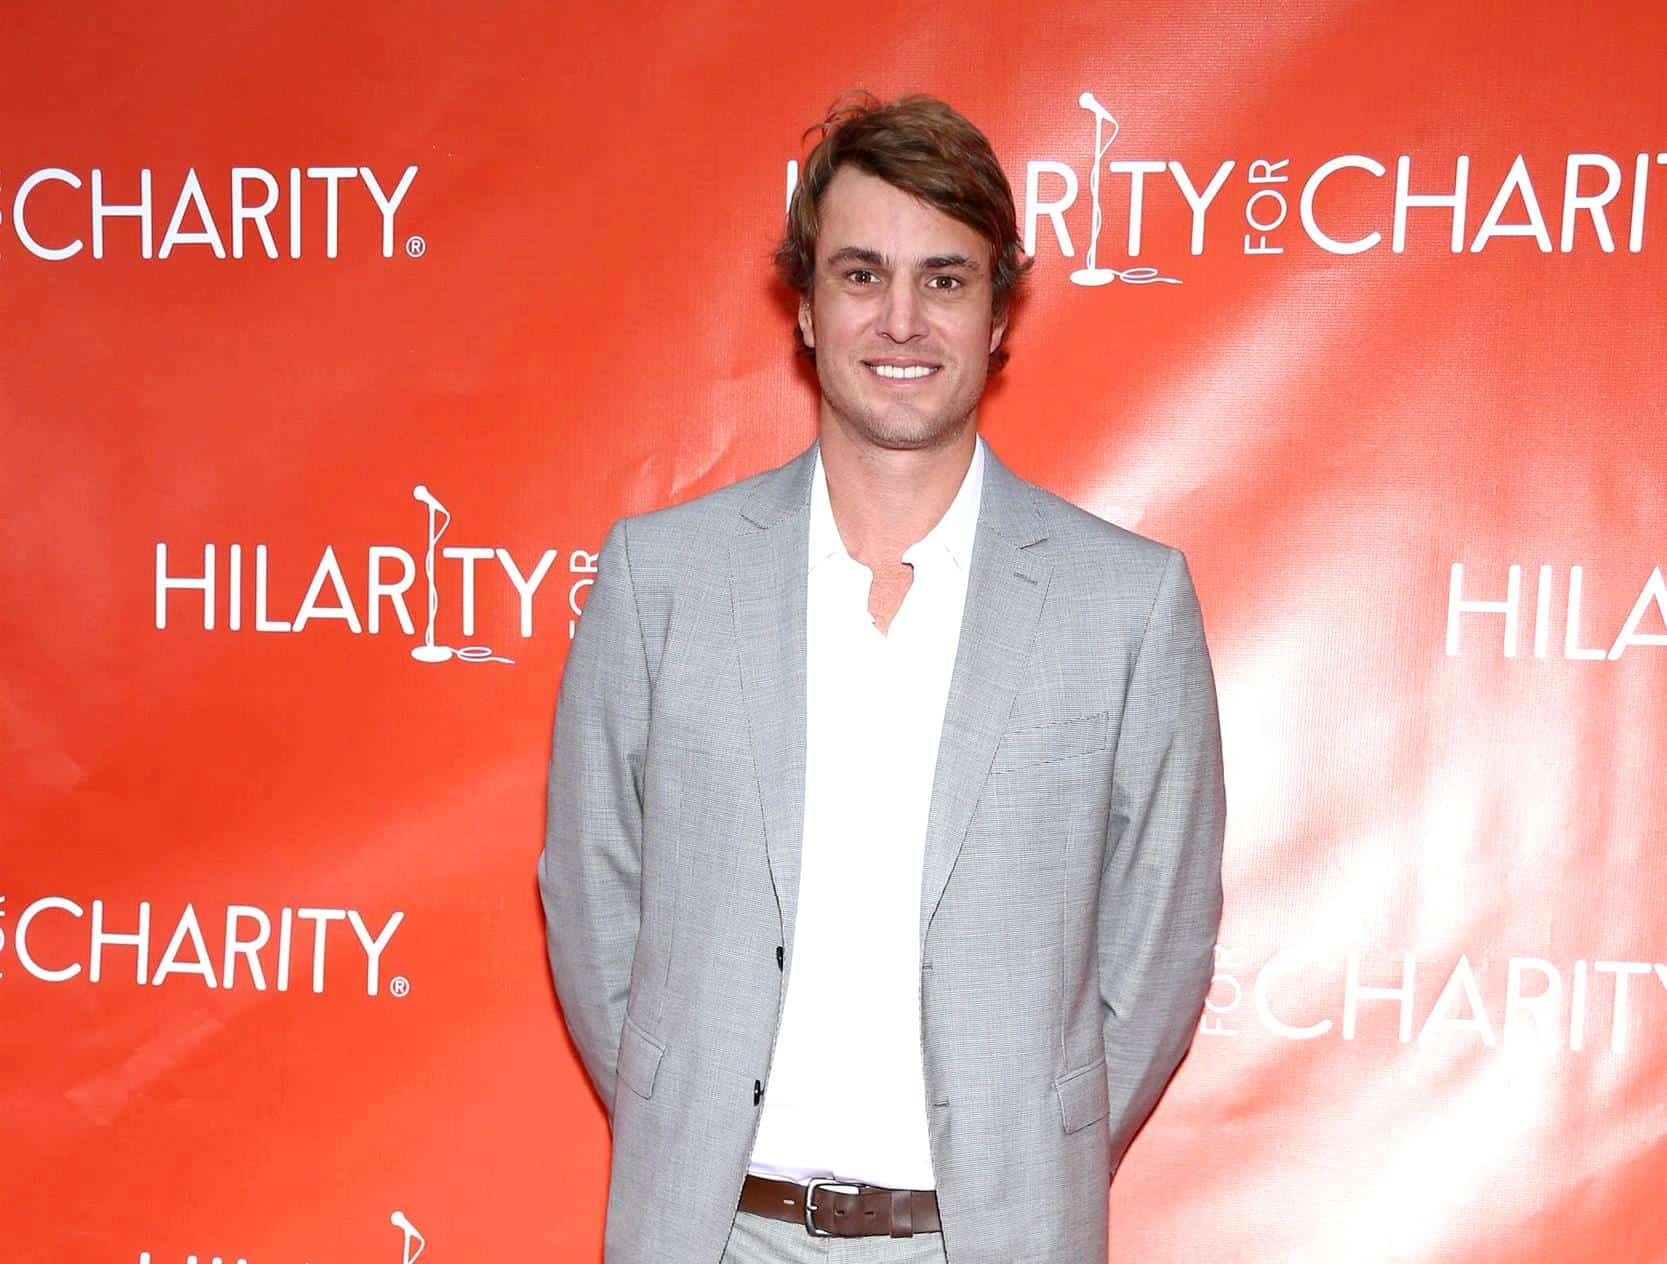 Southern Charm's Shep Rose Deletes Twitter After Backlash From Fans, Says He Feels 'Sick' About Mocking Homeless Woman